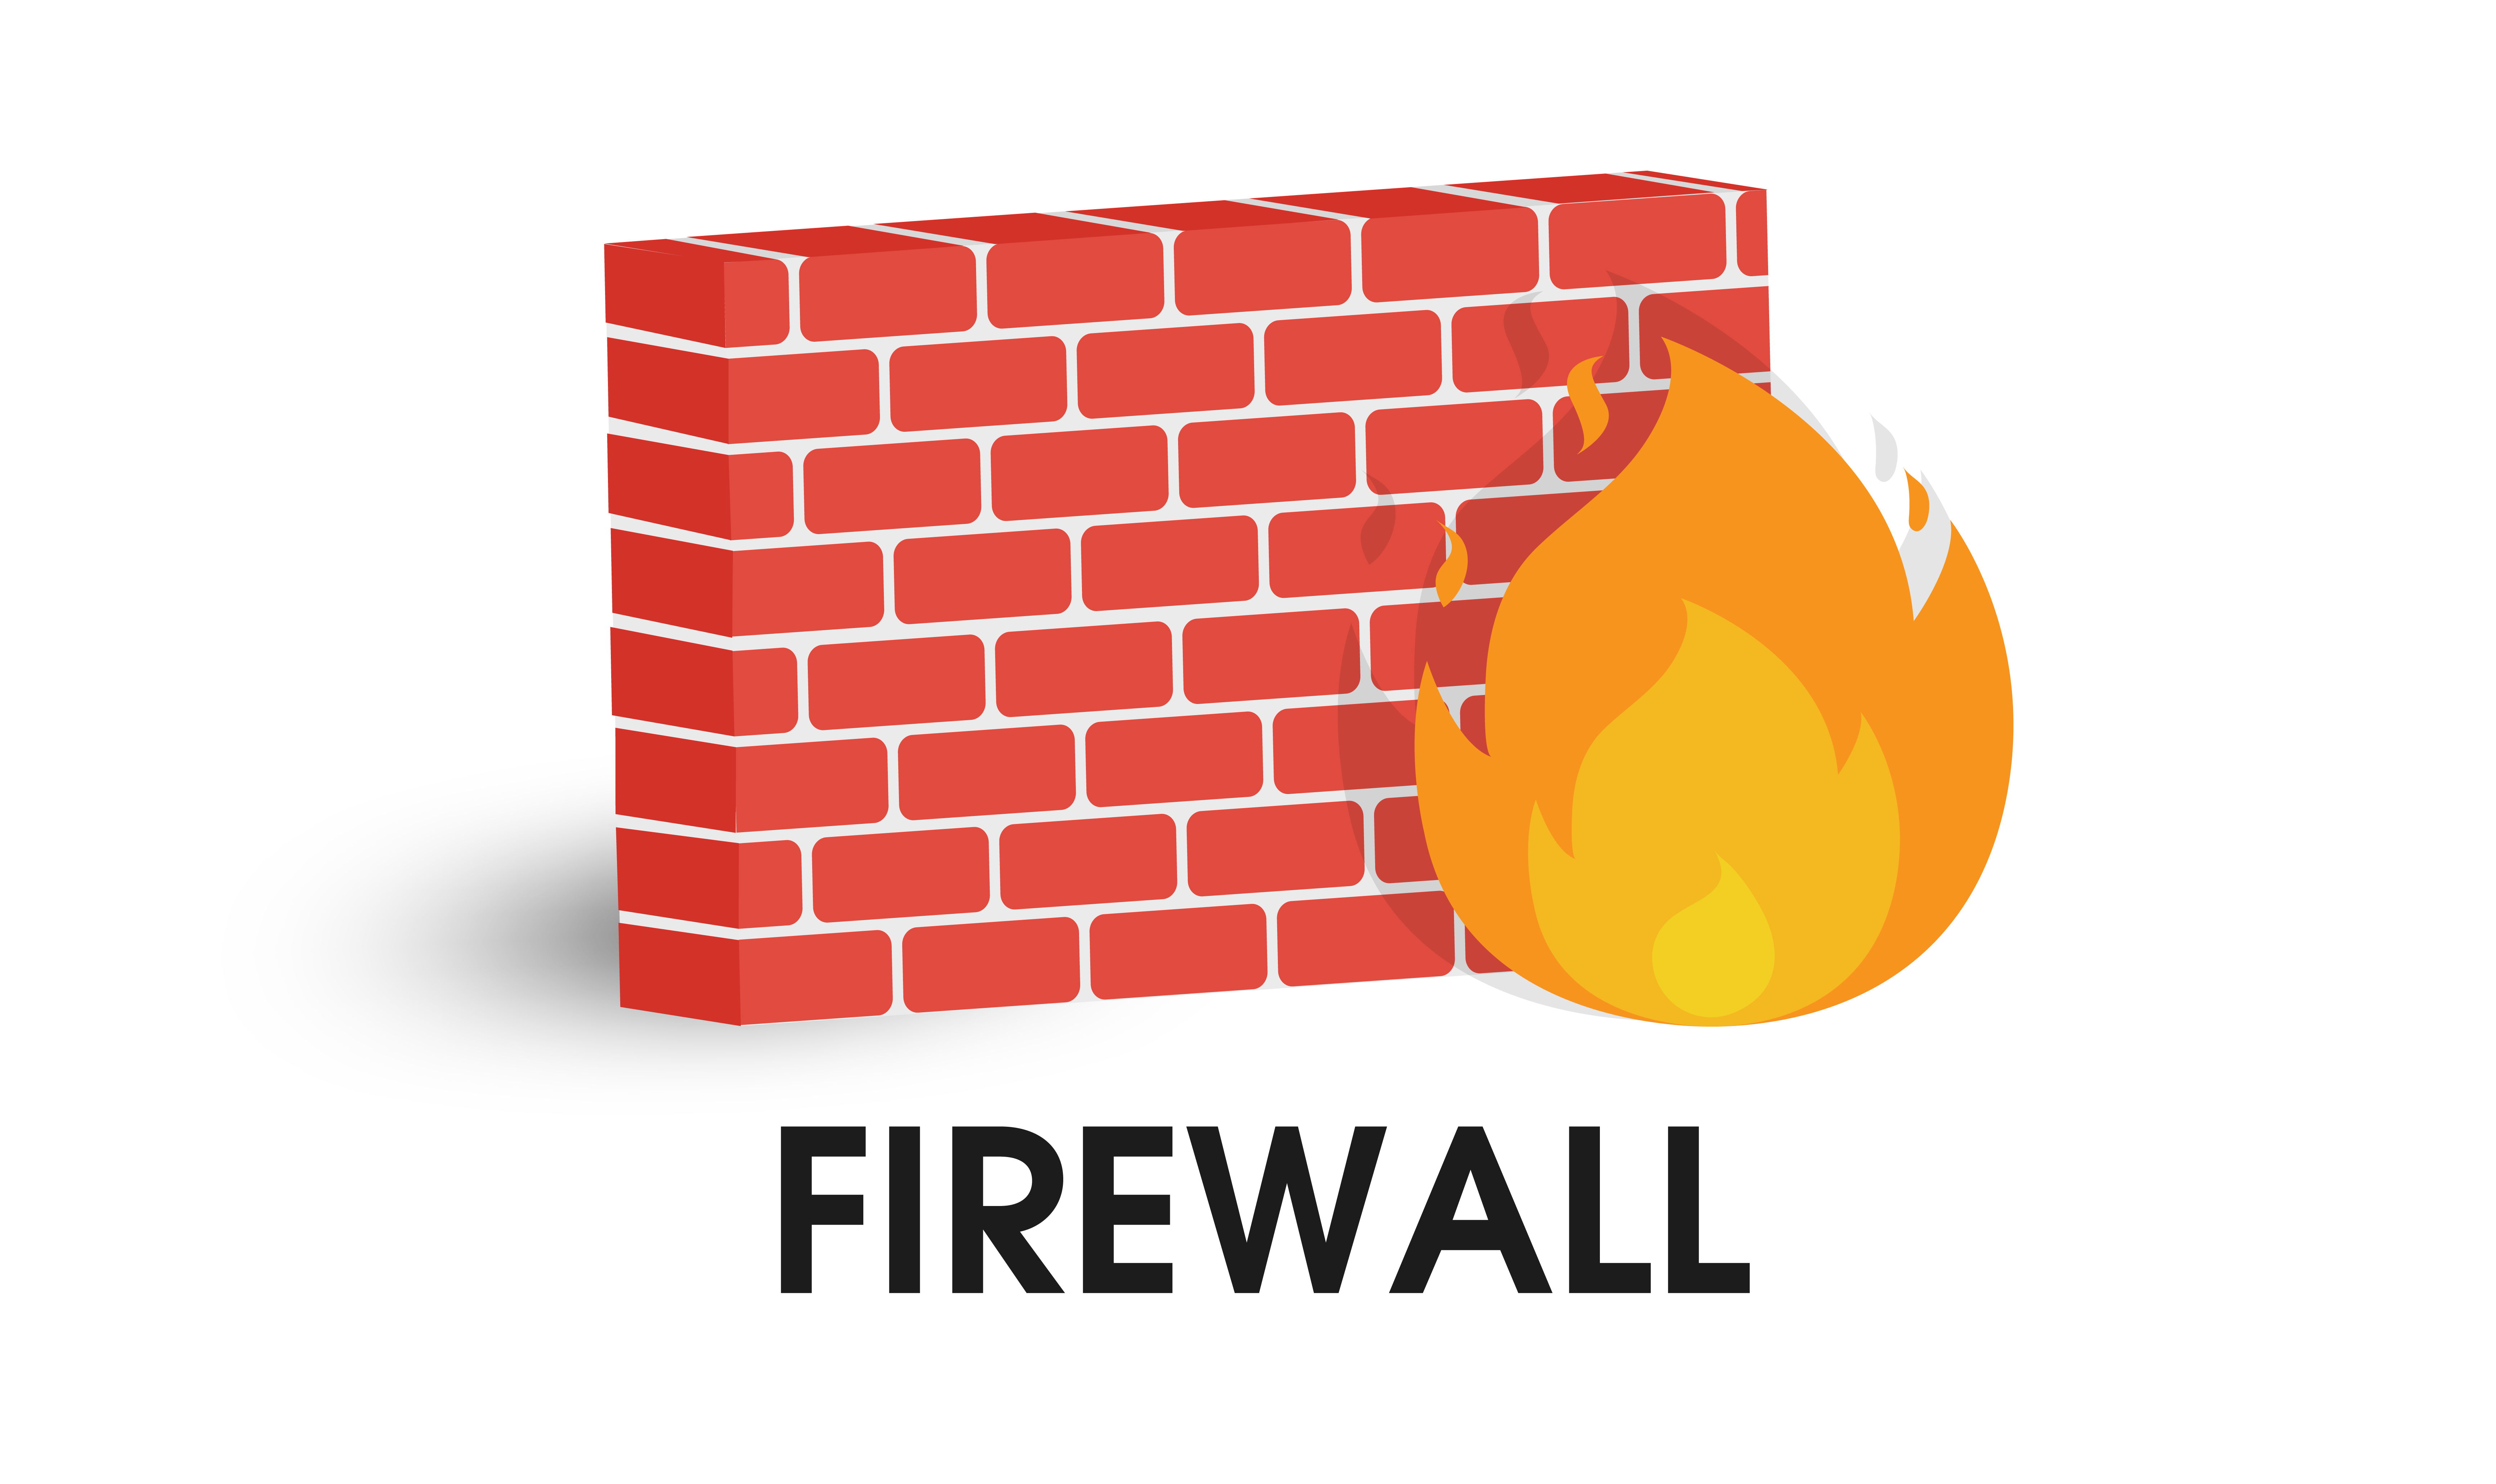 Network Firewall Icon. Illustration Vector On White